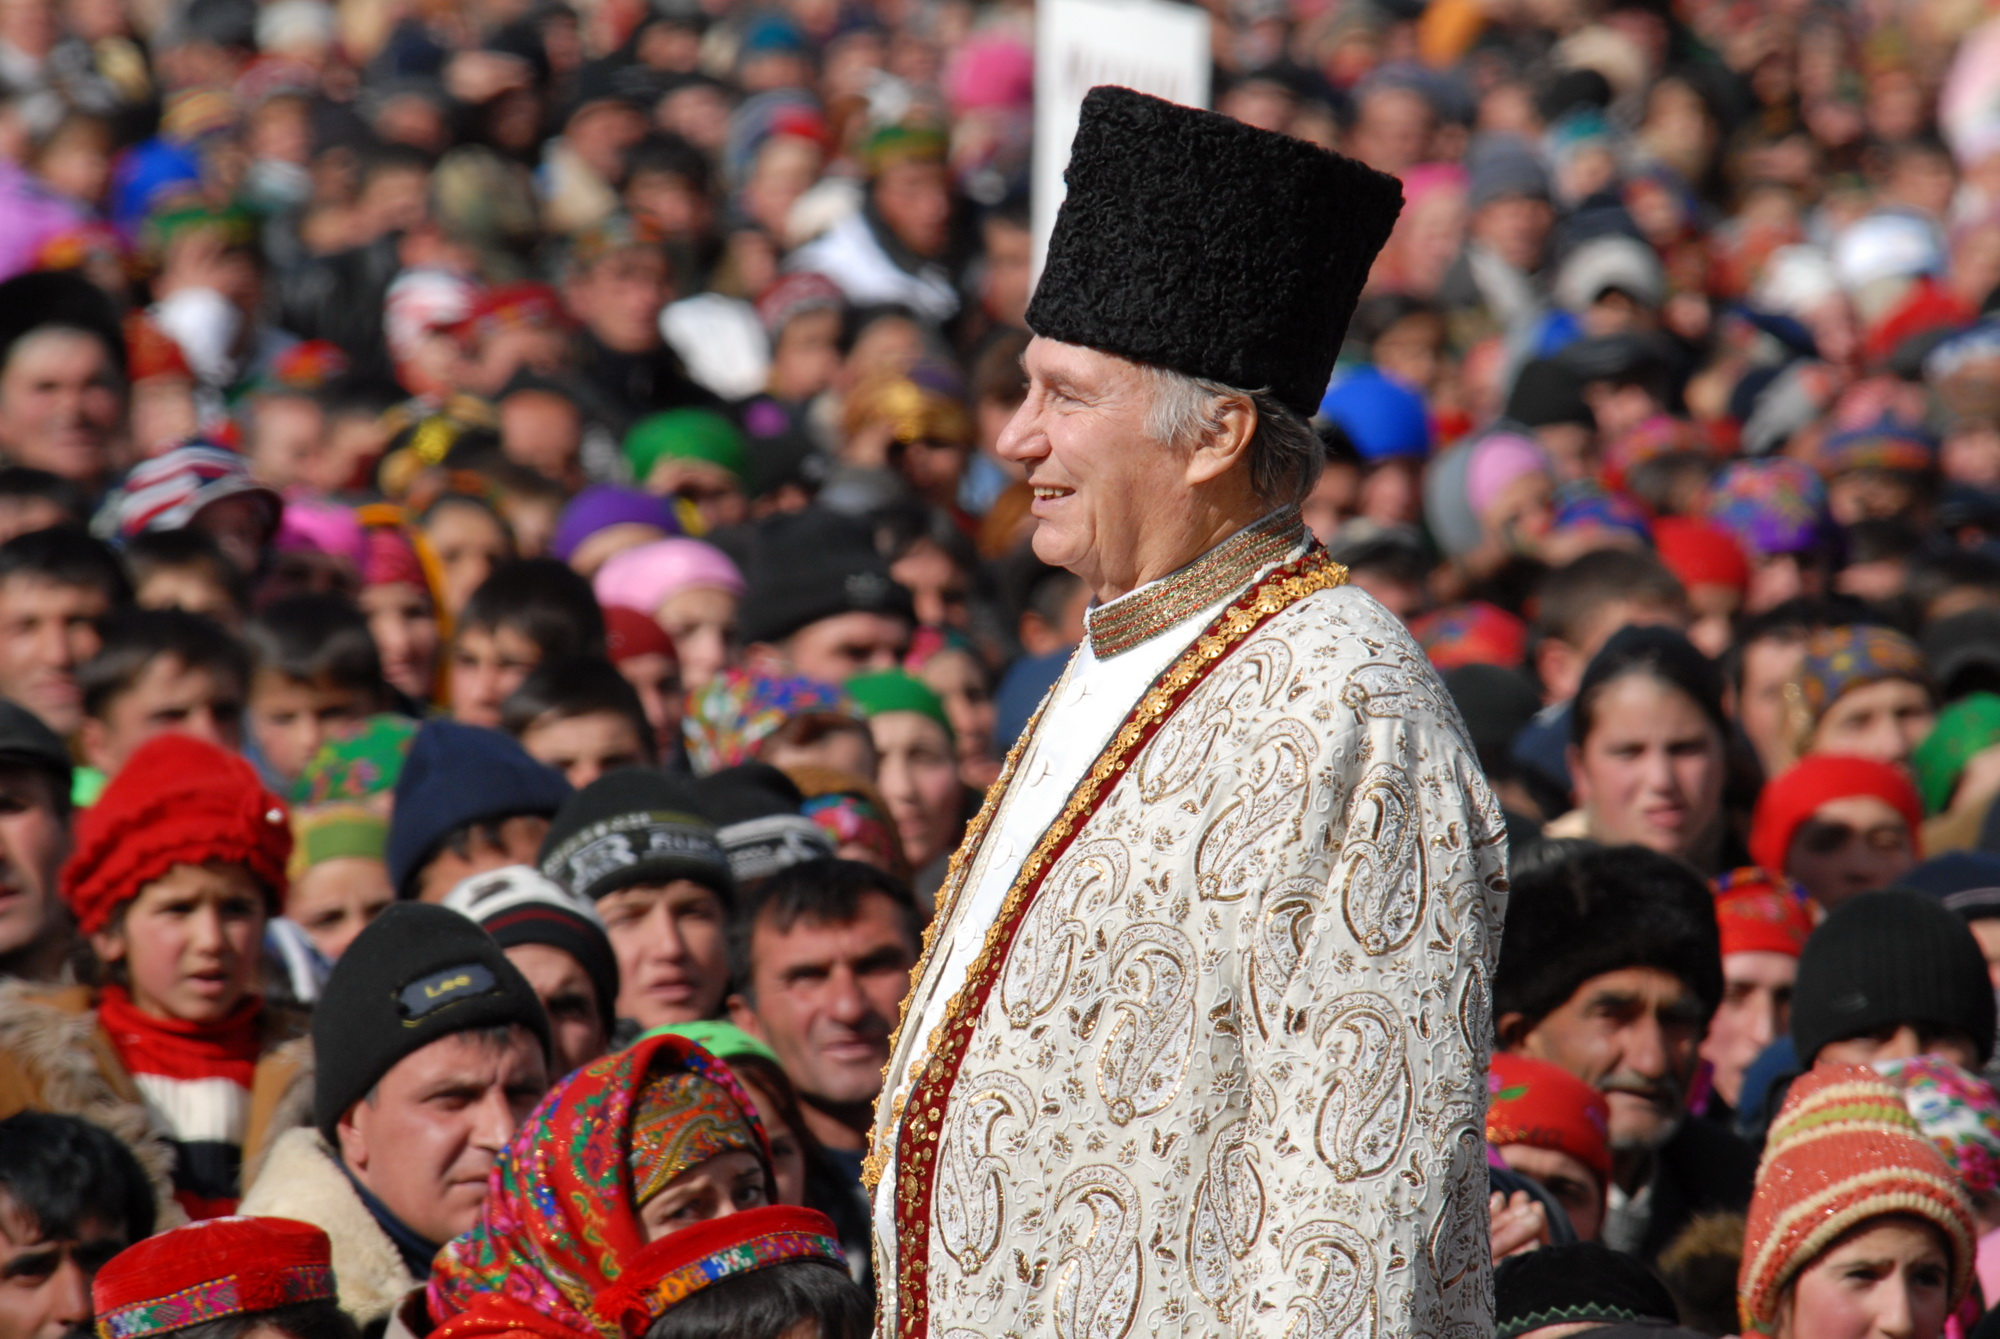 In Tajikistan, several thousand members of the Jamat came together for Mawlana Hazar Imam's visit.